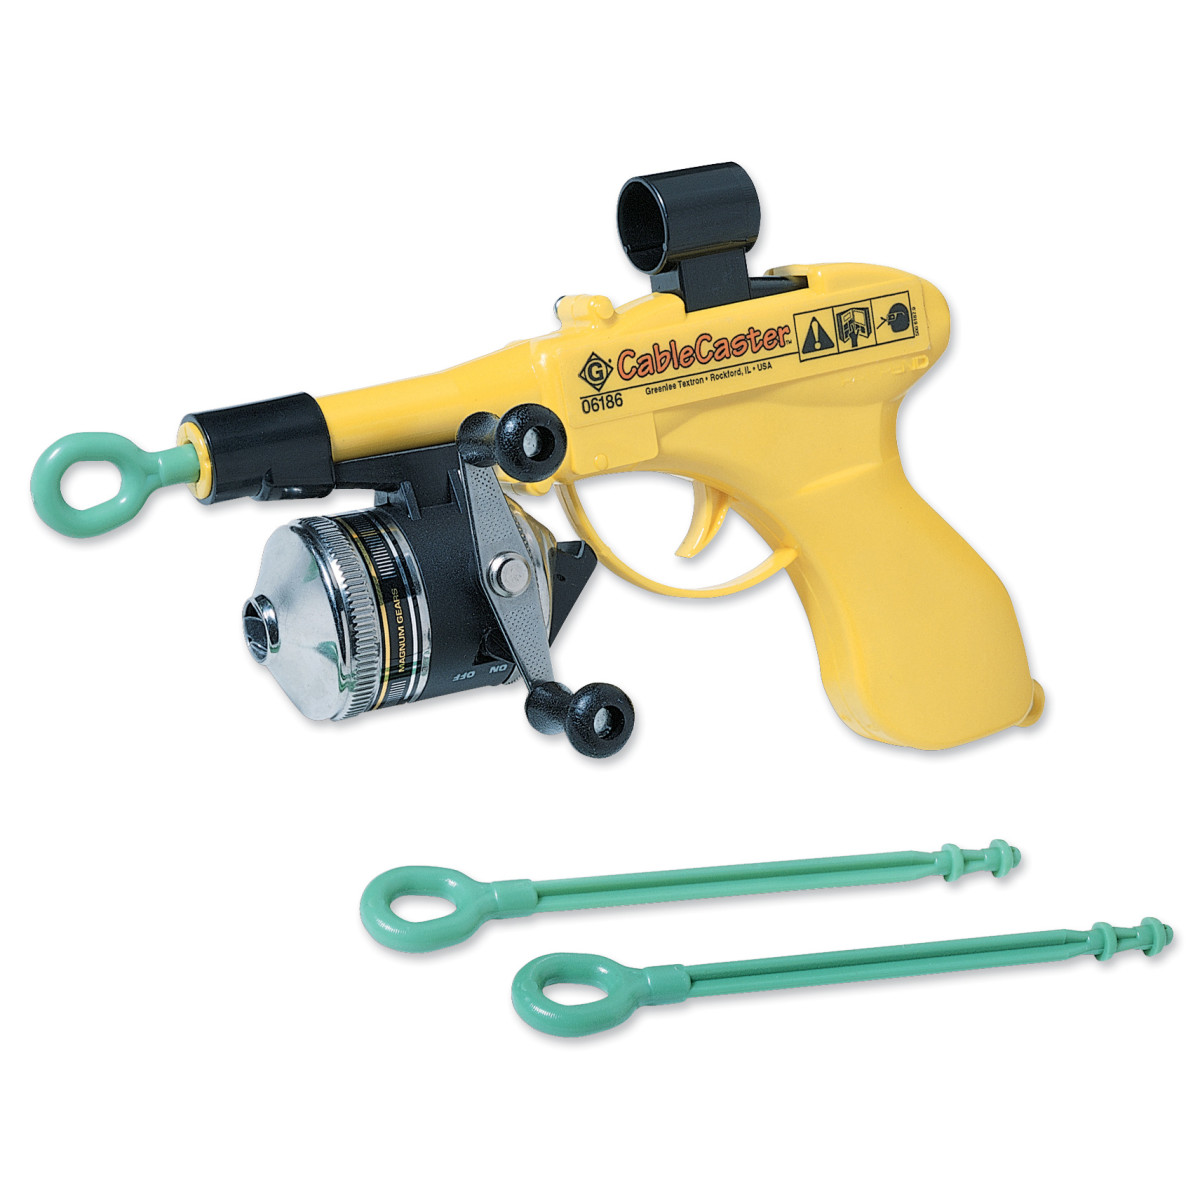 GRT06186 CABLECASTER WIRE PULLING TOOLWITH THREE DARTS, GREENLEE